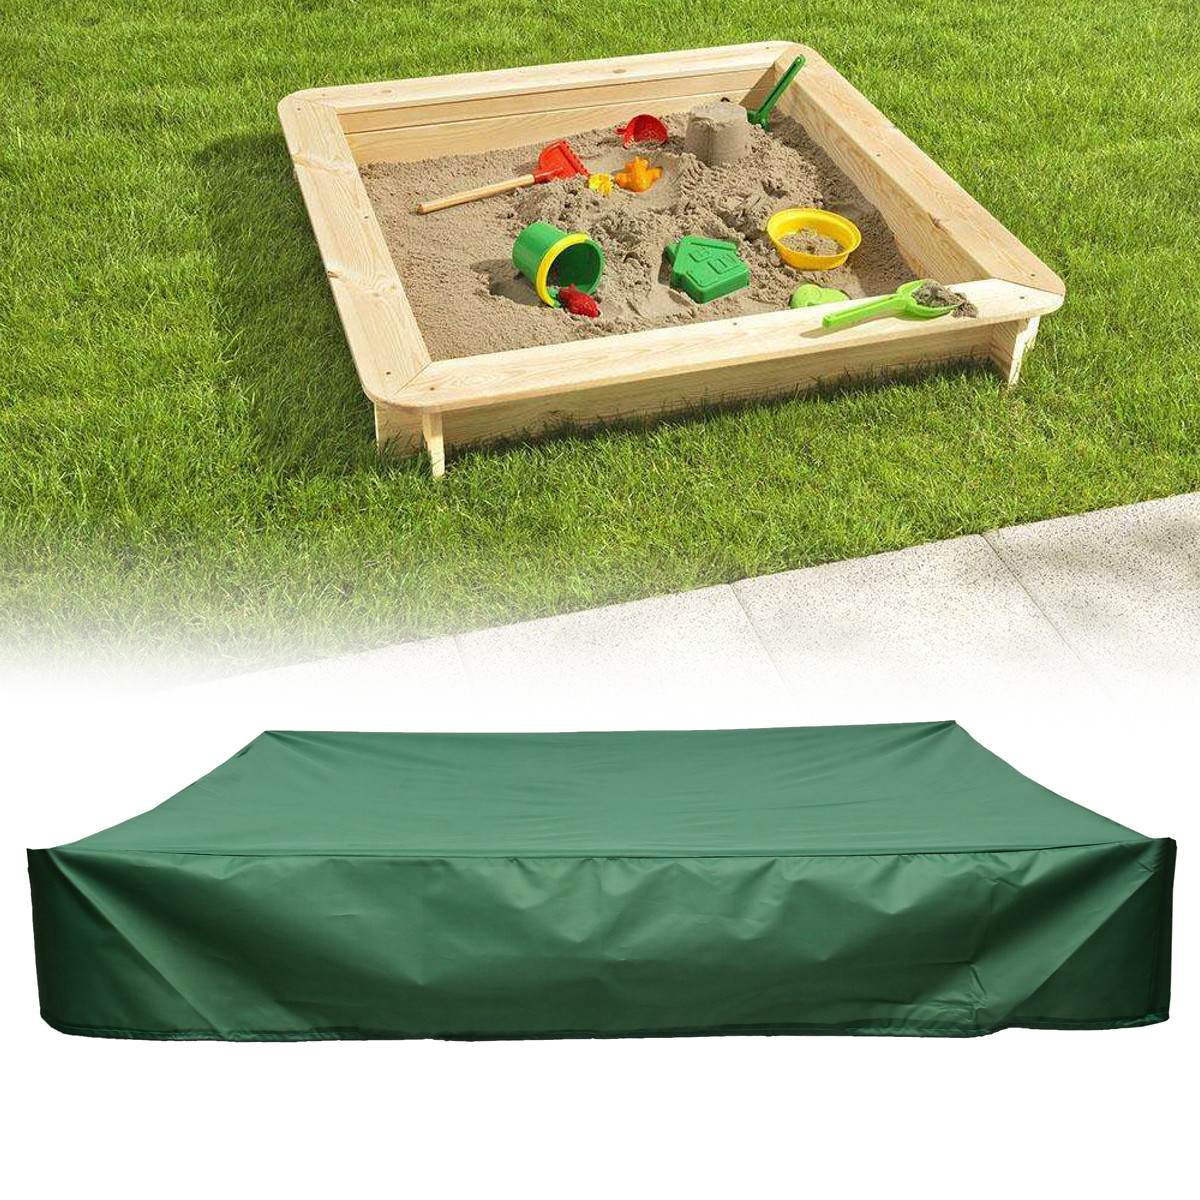 All-Purpose Waterproof Dust Cover Square Drawstring Sandbox Sandpit Dustproof Cover Canopy Green Oxford Cloth 4 SizesAll-Purpose Waterproof Dust Cover Square Drawstring Sandbox Sandpit Dustproof Cover Canopy Green Oxford Cloth 4 Sizes